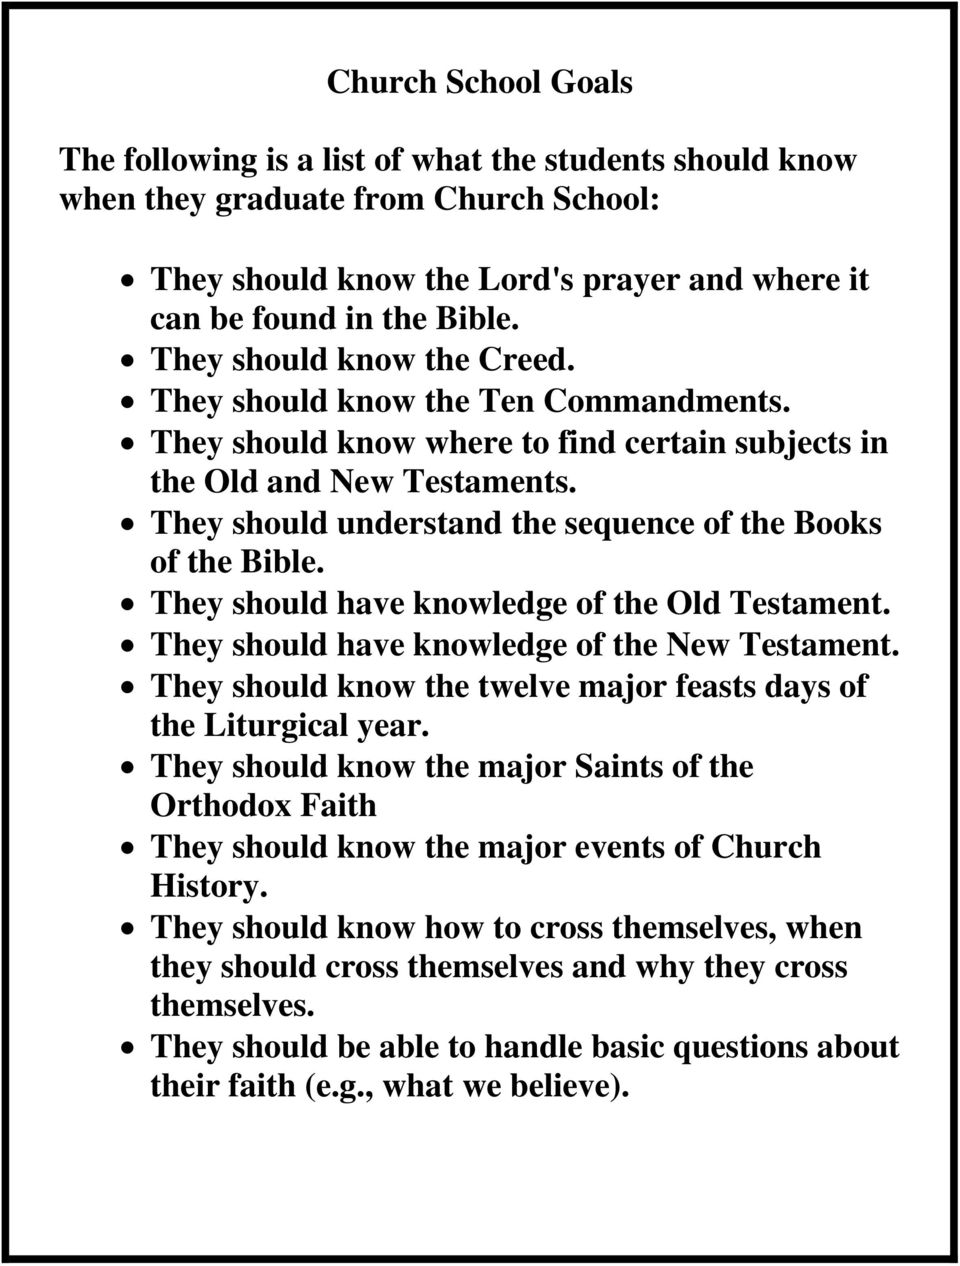 They should understand the sequence of the Books of the Bible. They should have knowledge of the Old Testament. They should have knowledge of the New Testament.